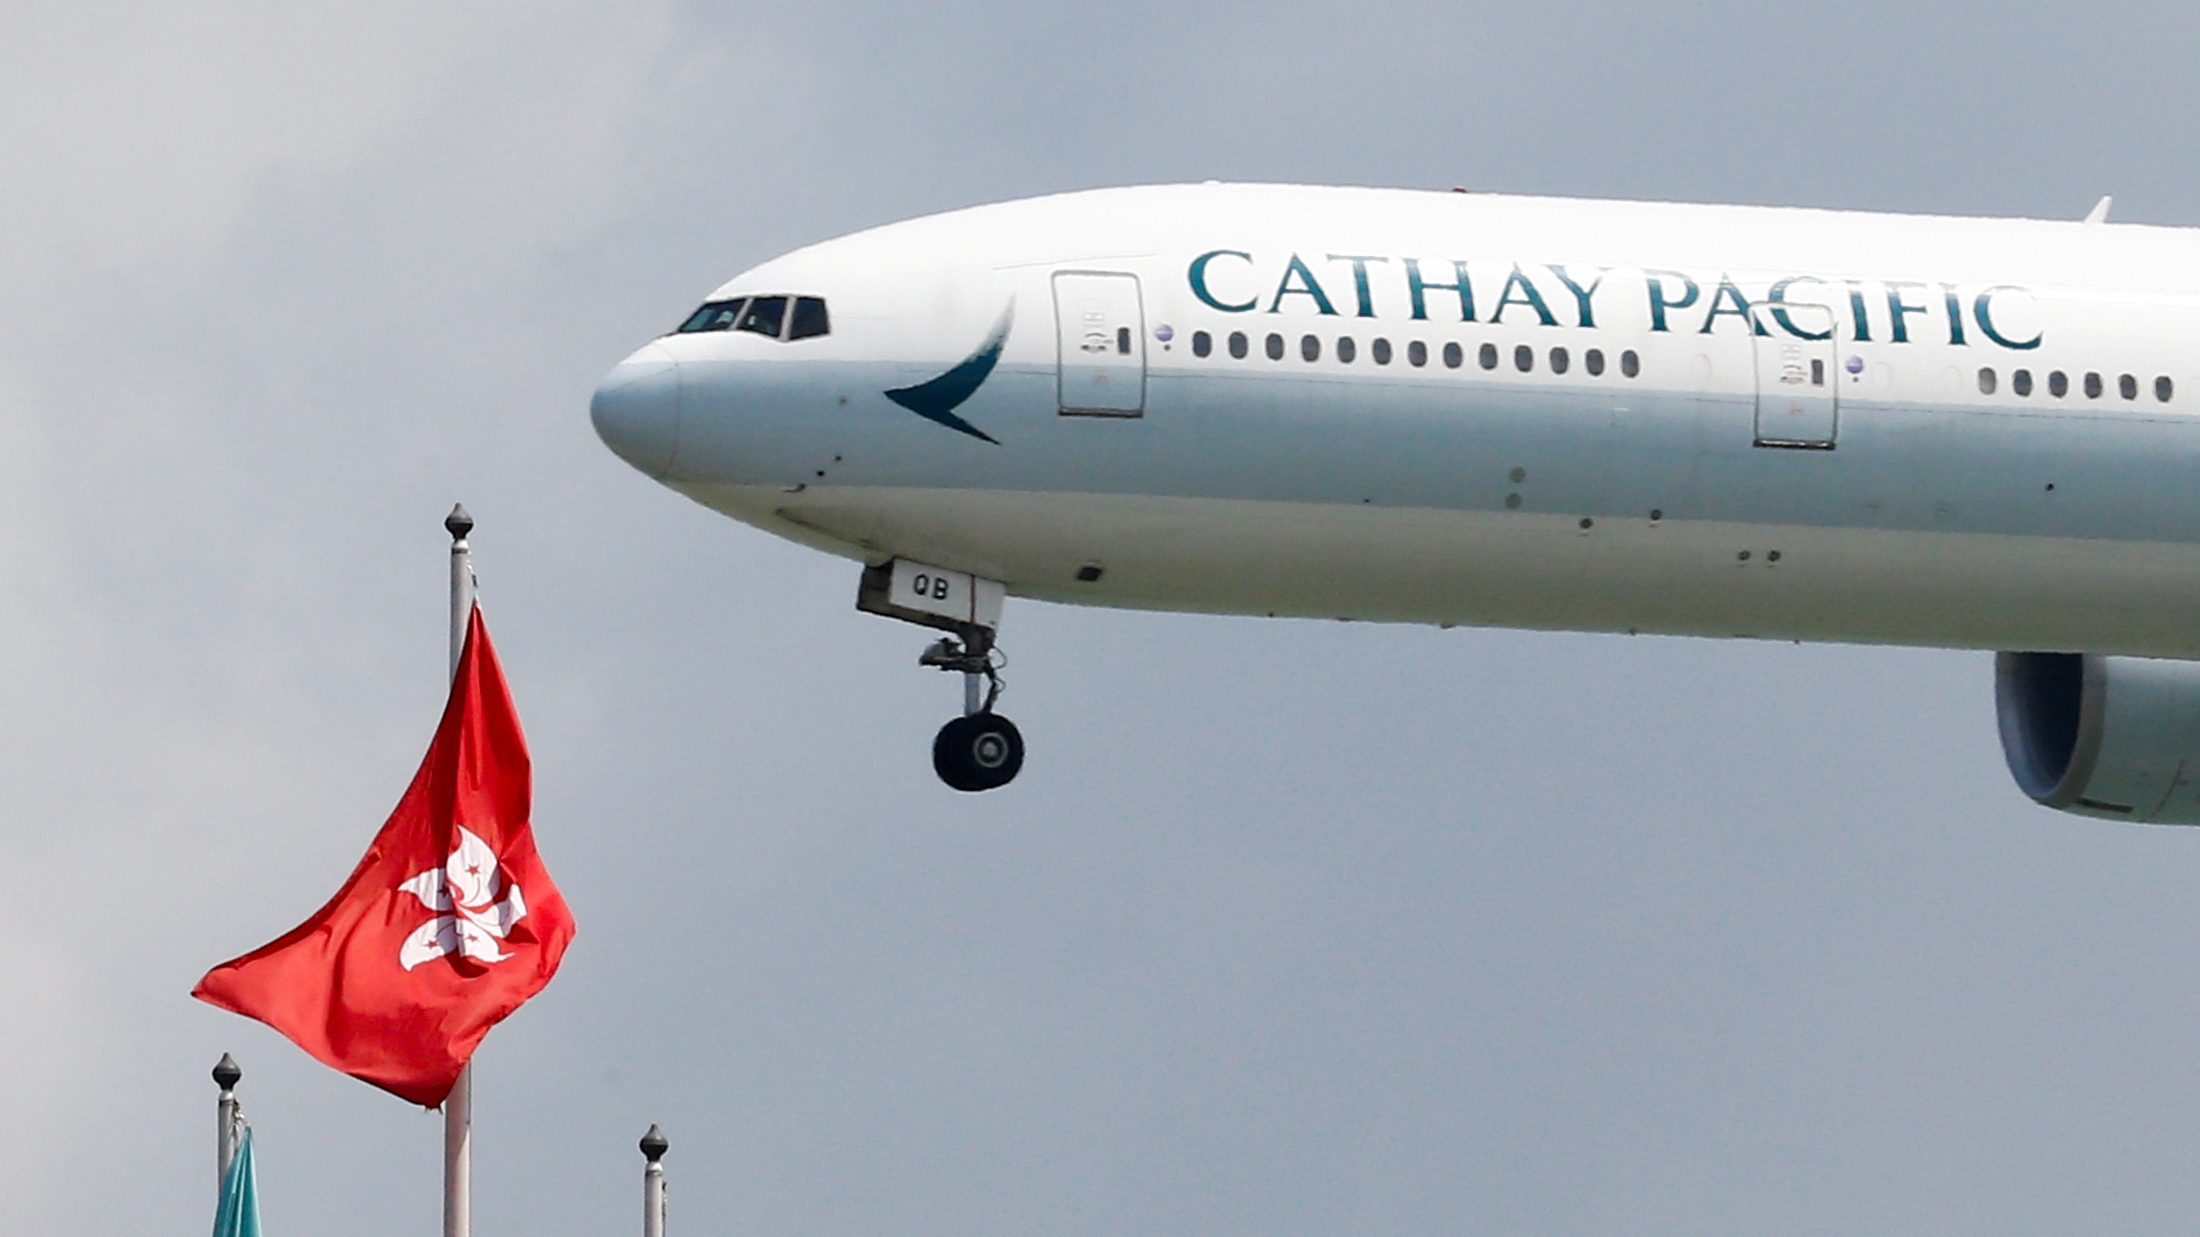 Hong Kong's Cathay Pacific airline